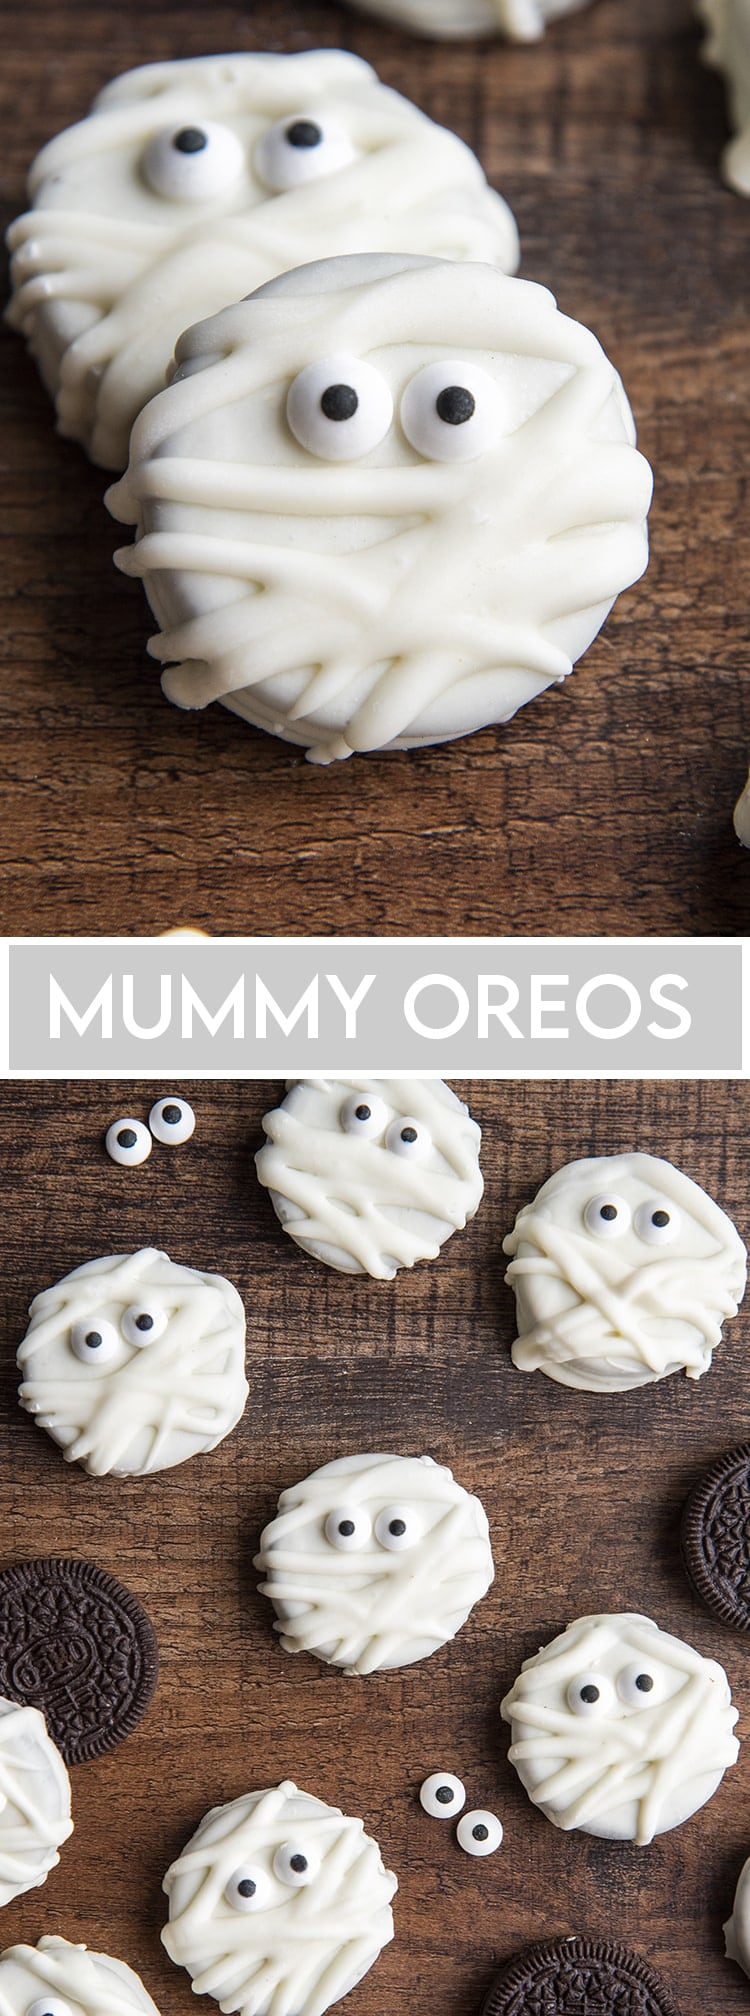 A collage of two photos of Oreos dipped in white chocolate and decorated to look like mummies.